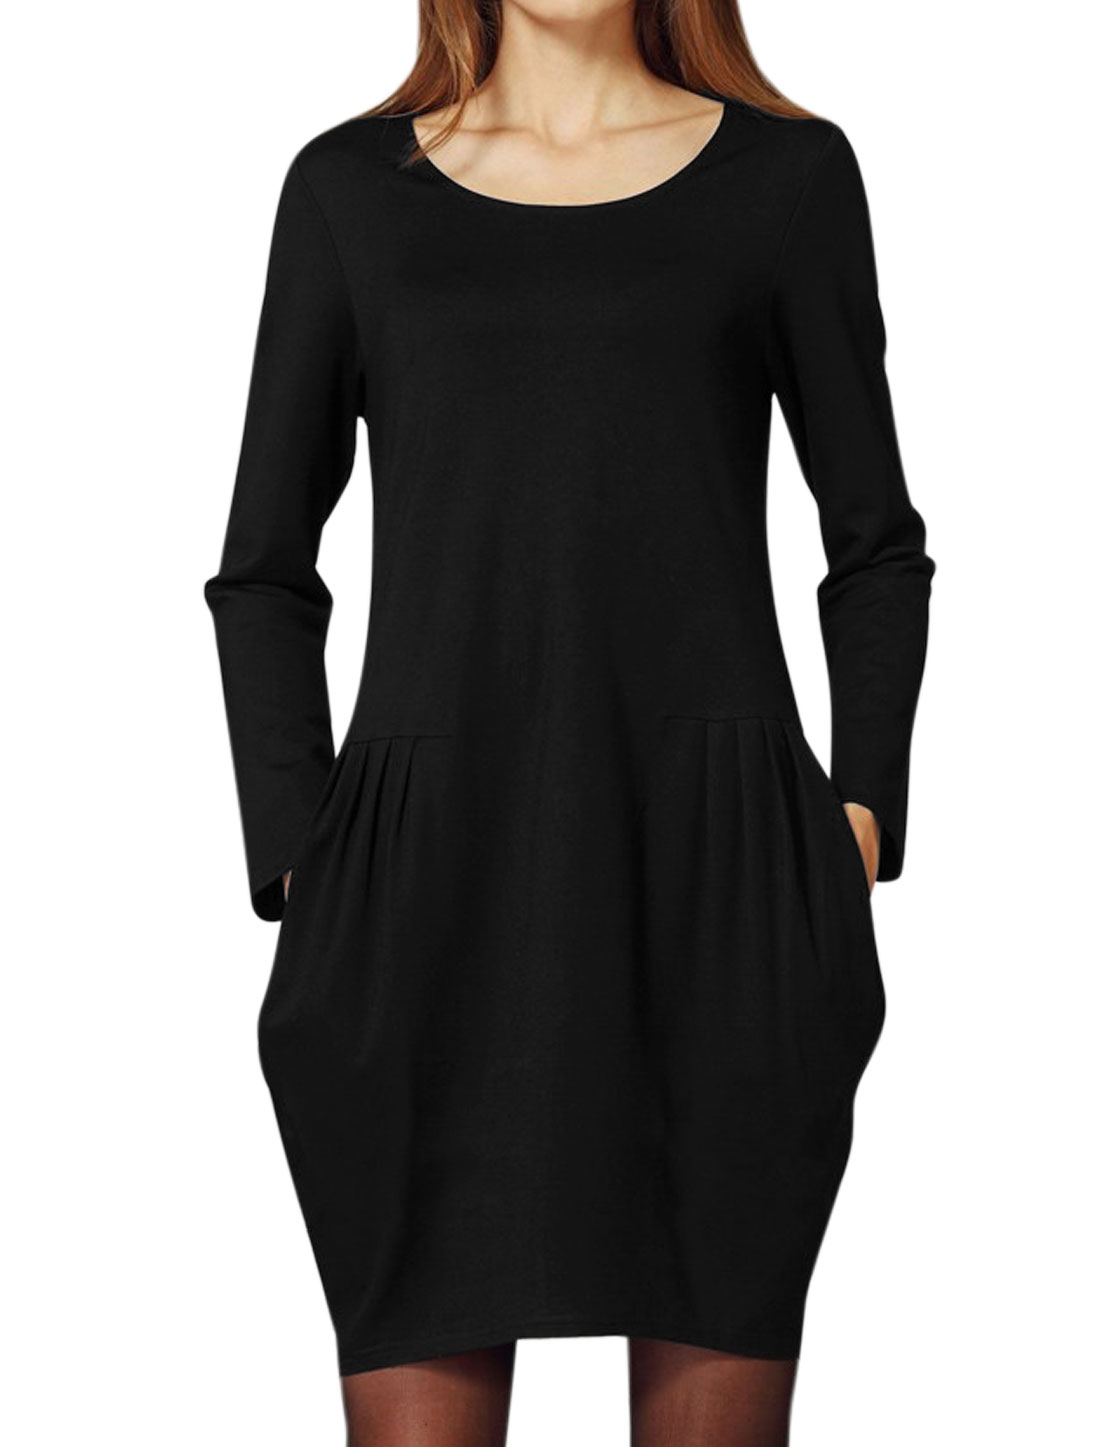 Women Round Neck Side Pockets Pleated Tunic Dress Black S